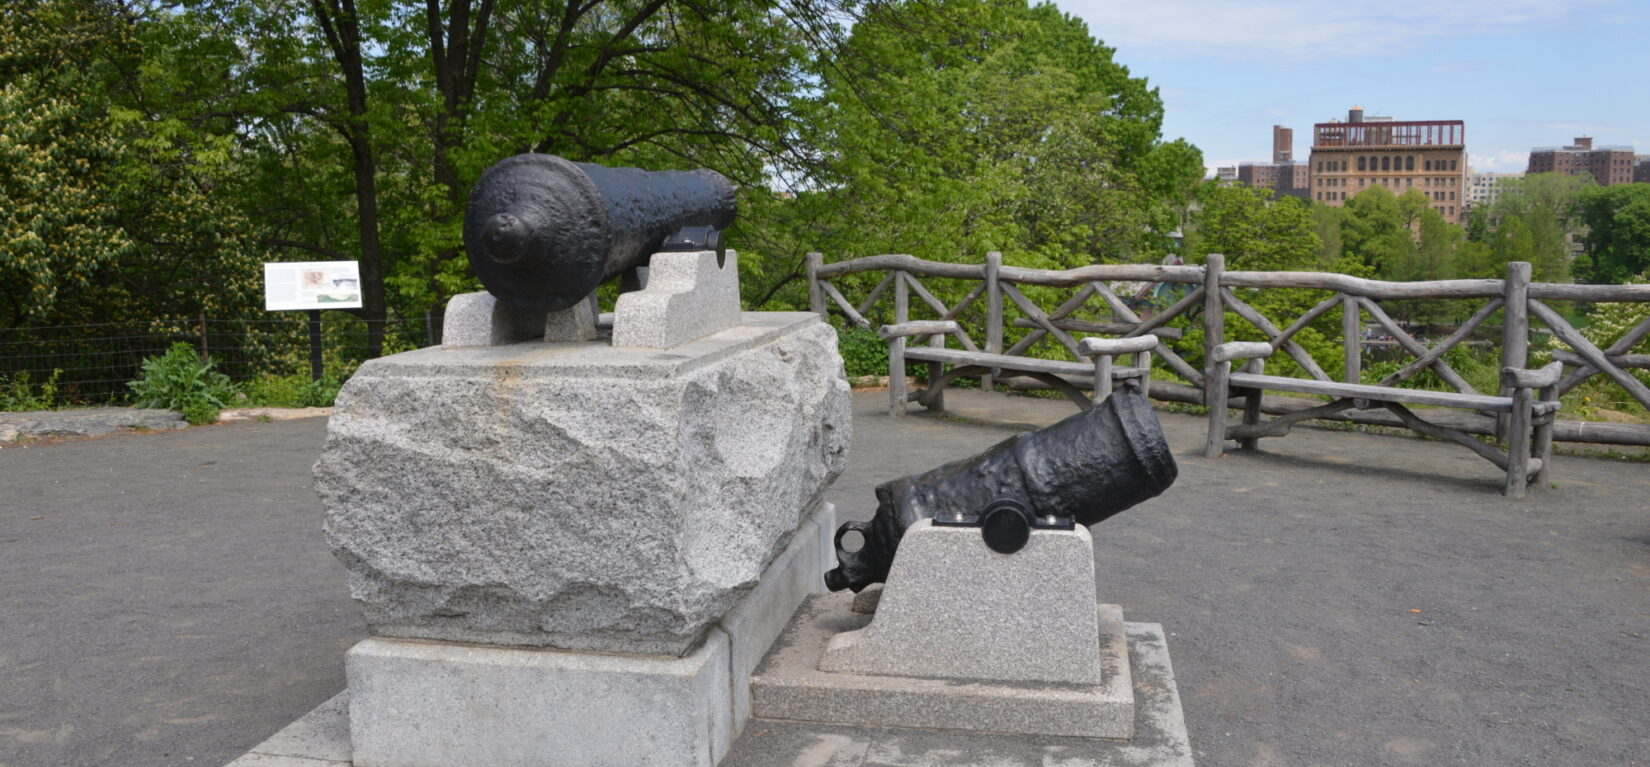 Two antique canons on rough-hewn stone foundations commemorate the Fort Clinton landscape.